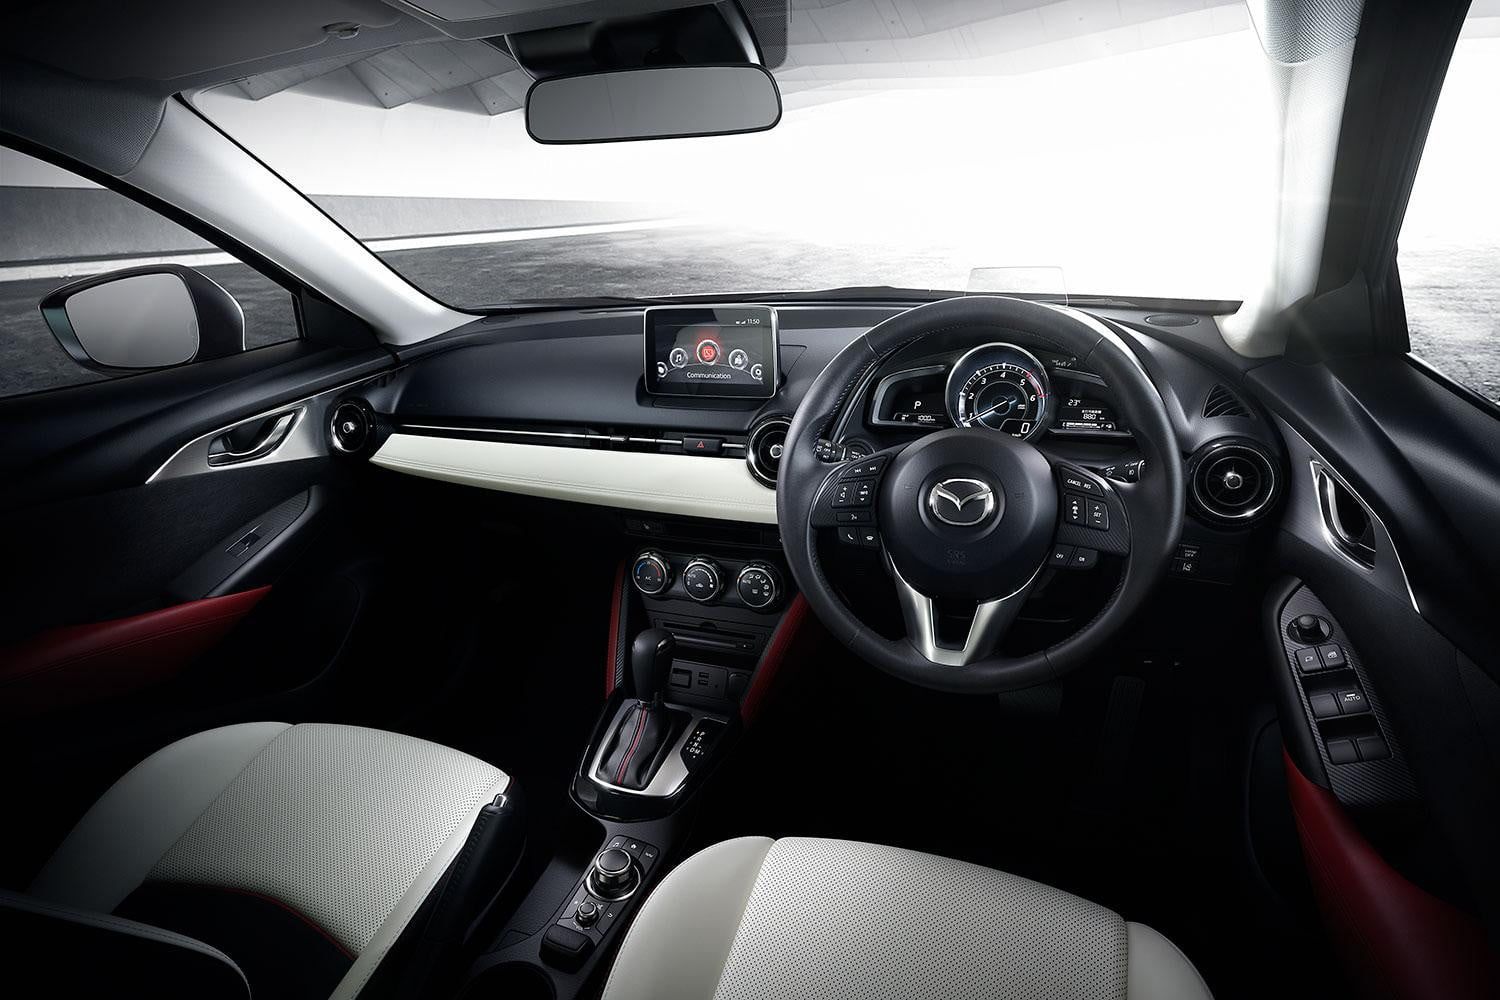 2016 mazda cx 3 subcompact review digital trends. Black Bedroom Furniture Sets. Home Design Ideas